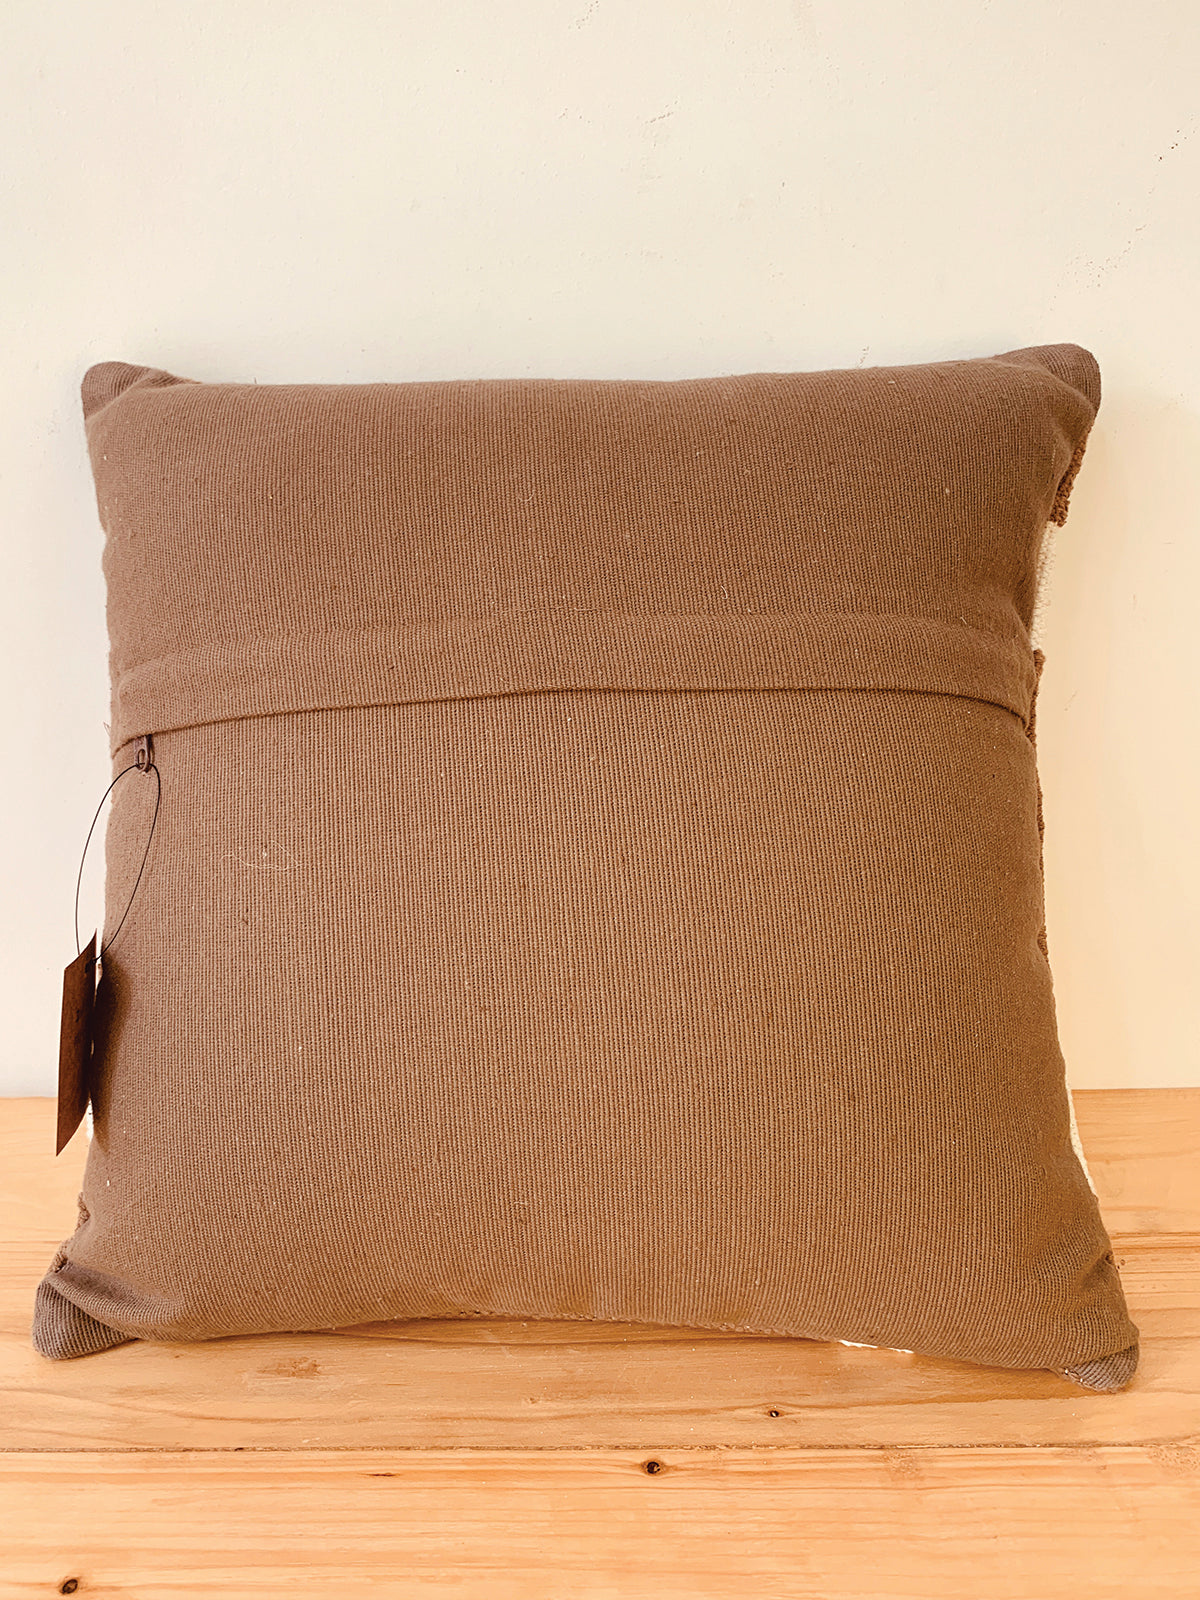 Brown Morrocan tile woven  cotton cushion cover  40*40